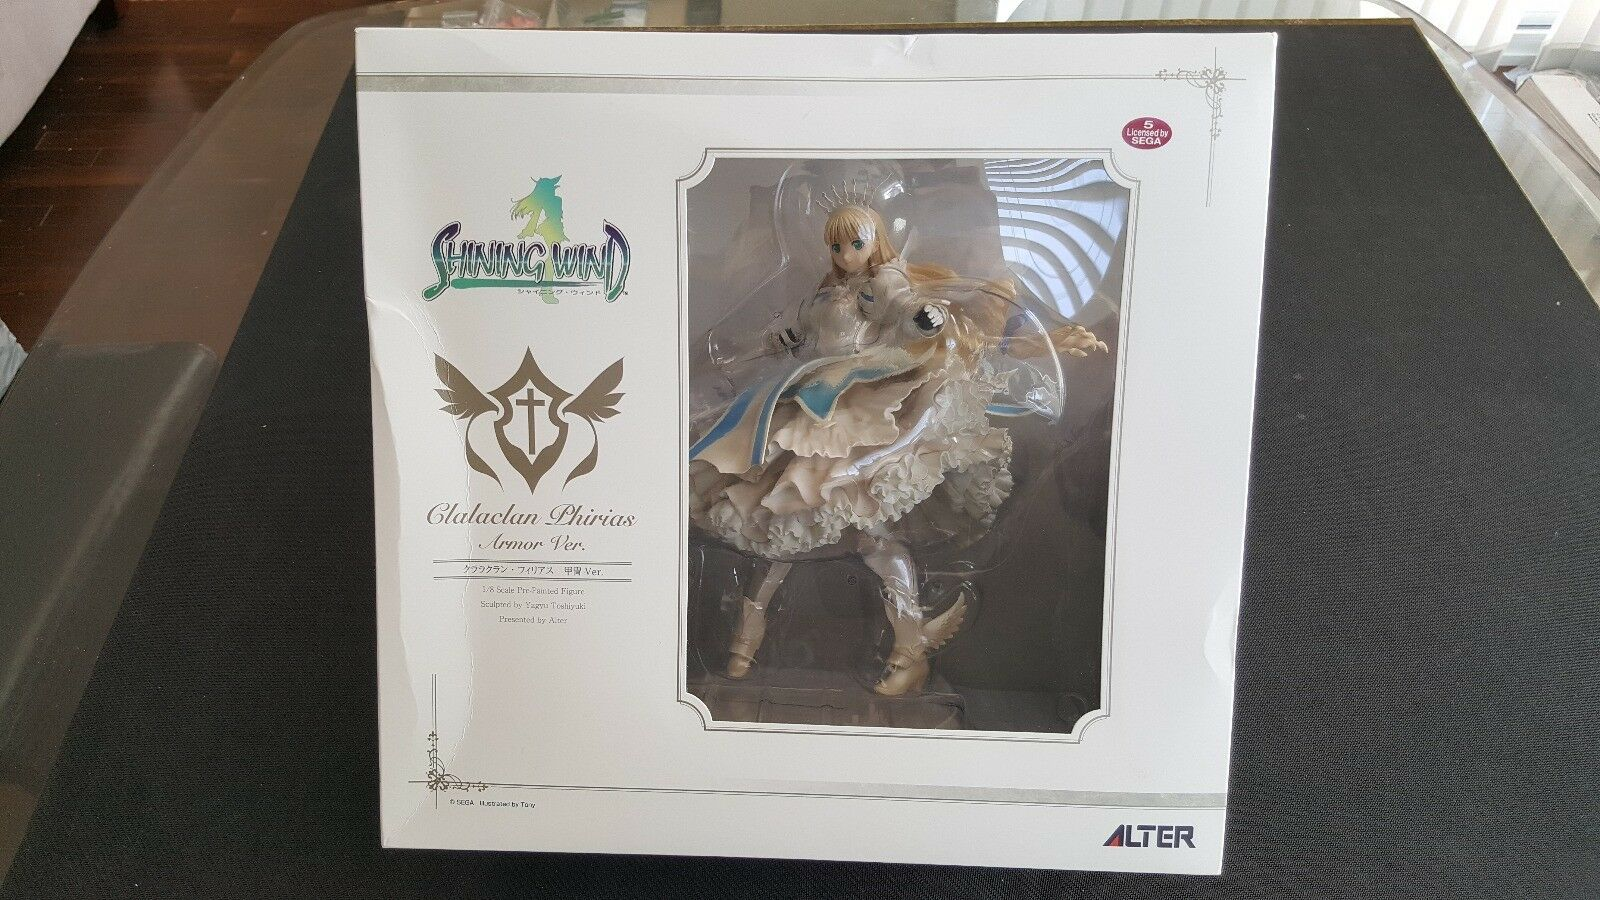 Shining Wind - Clalaclan Philias PVC Statue - - - Alter (Opened) 5eaf43